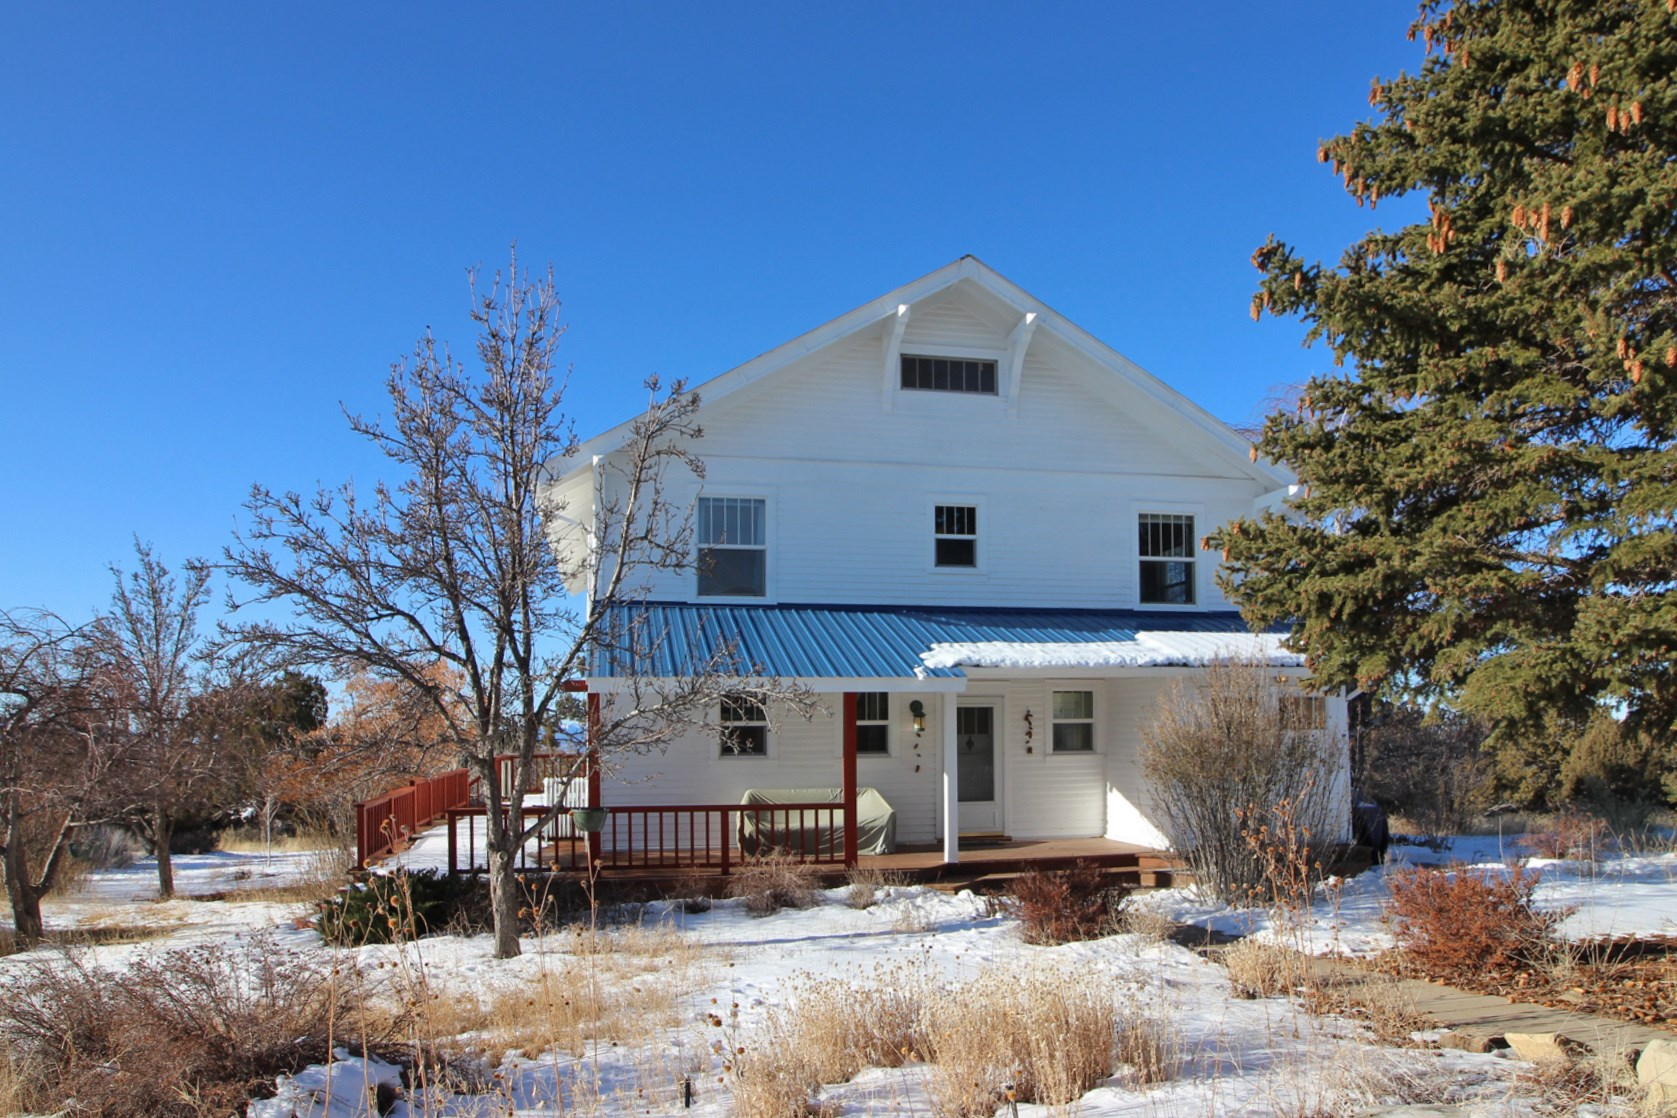 Historic Country Home on 4 acres in Dolores, Colorado